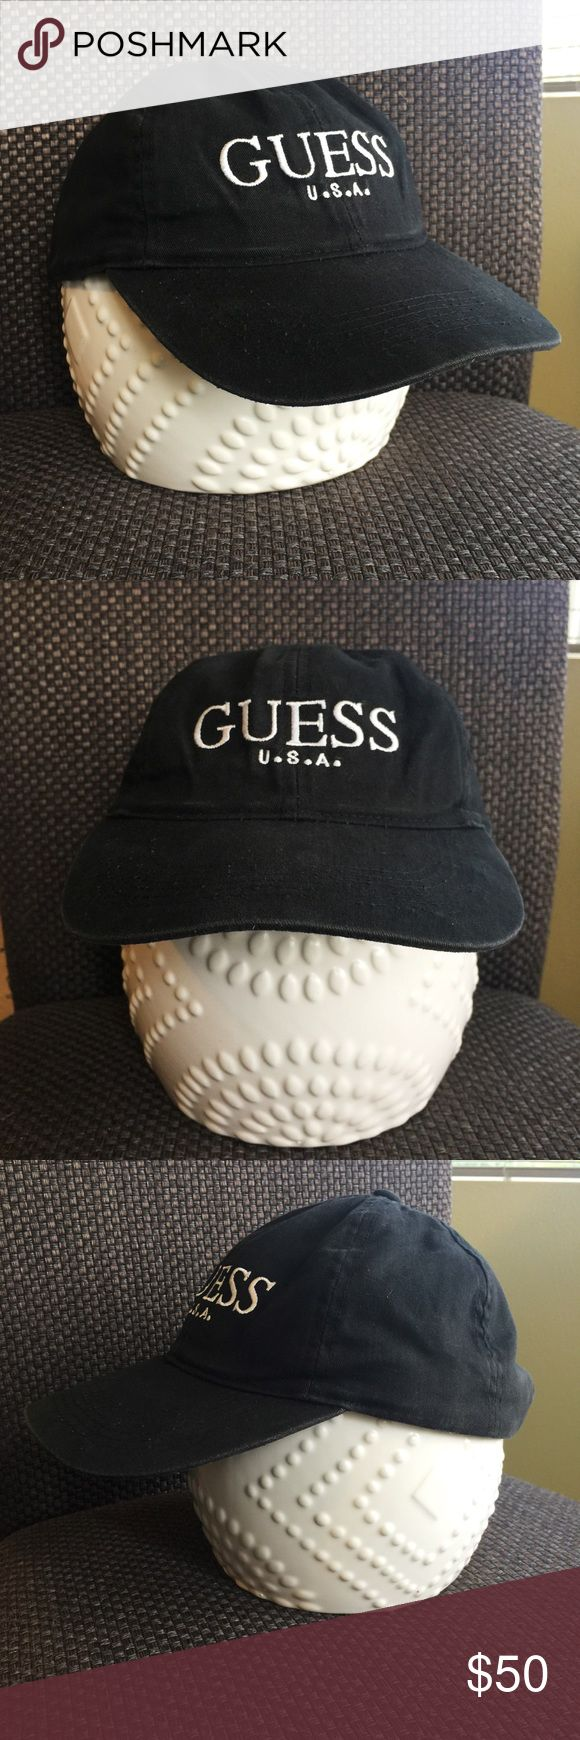 Vintage 90's Guess U.S.A. SnapBack hat Vintage Guess USA SnapBack hat. Unisex and one size fits all. Black with white lettering. Minor discoloring on inside of hat (see picture), but cannot see if from exterior. 90's, classic, ASAP Rocky style. Guess Accessories Hats